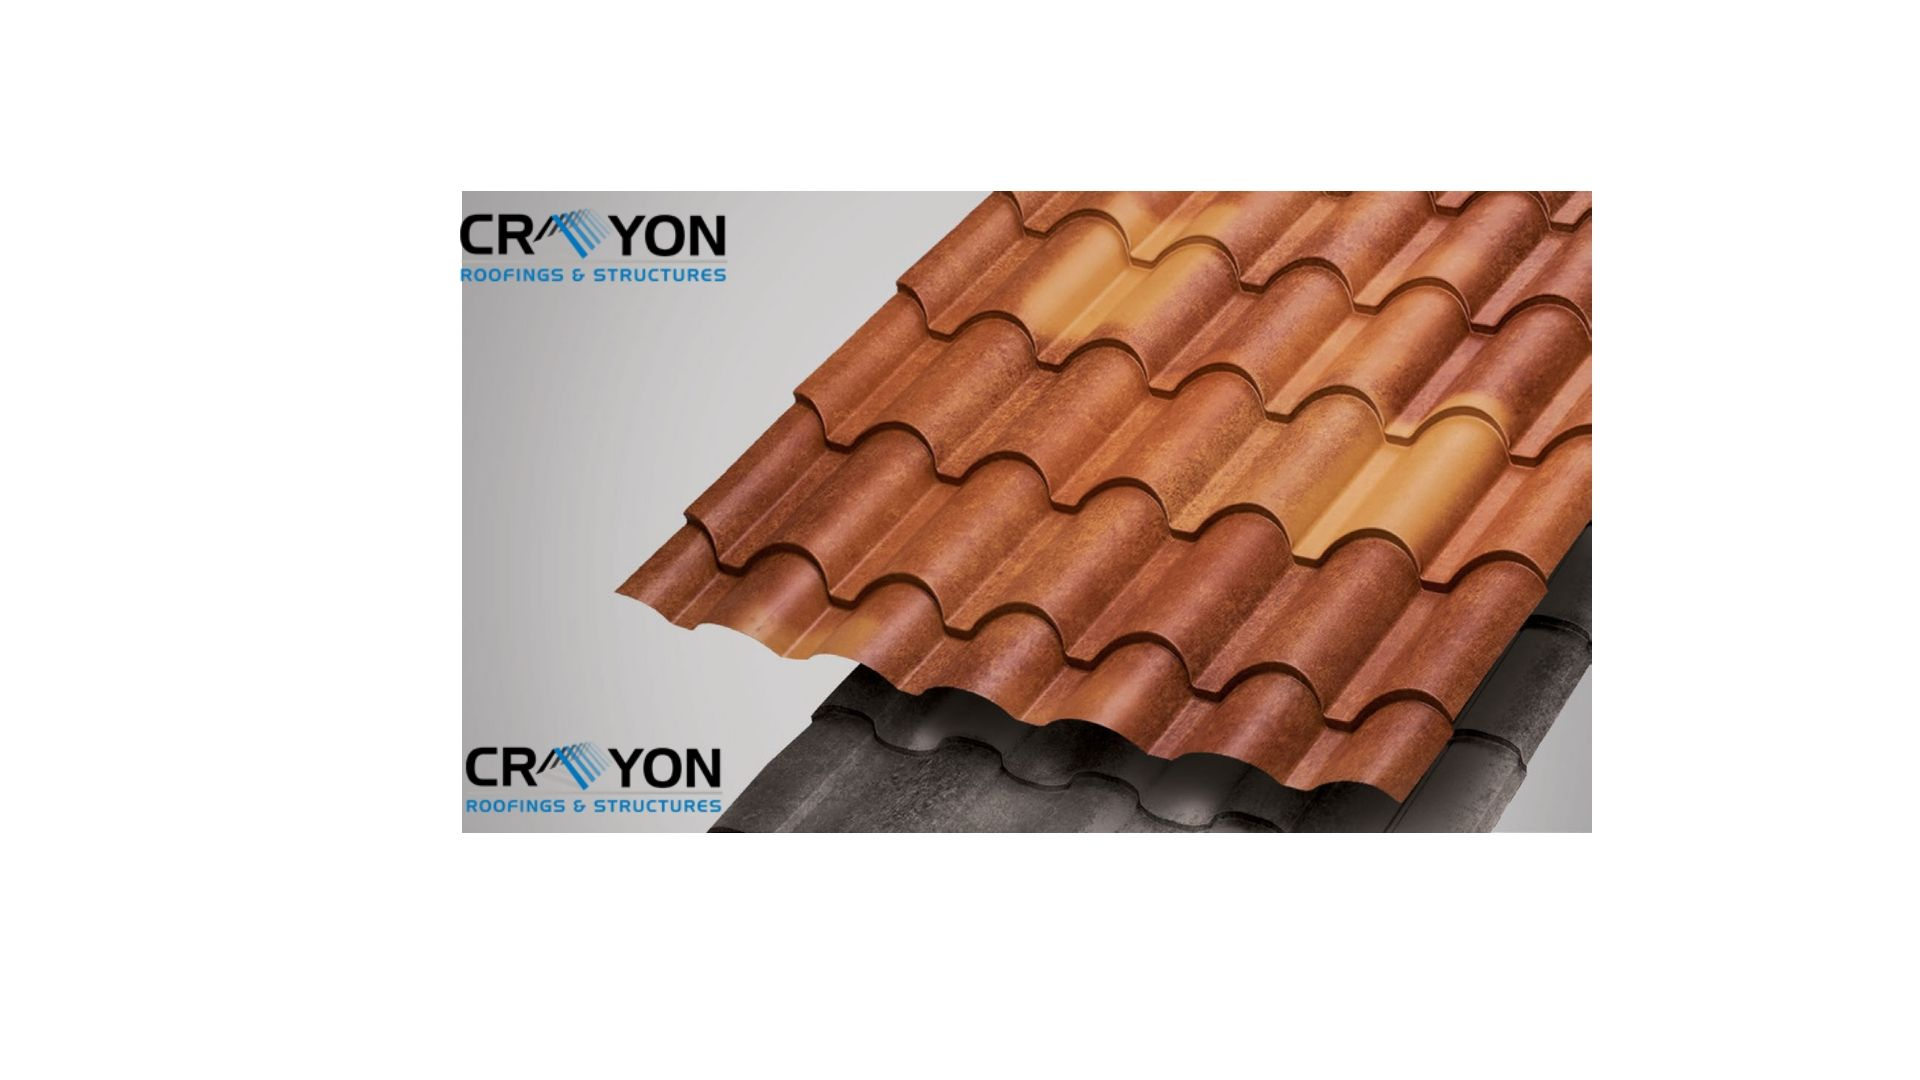 Crayon Roofings Offer The Best Roofing Sheets Which Exhibit Greater Corrosion Resistance Wider Spanni Roofing Sheets Roofing Sheet Metal Roofing